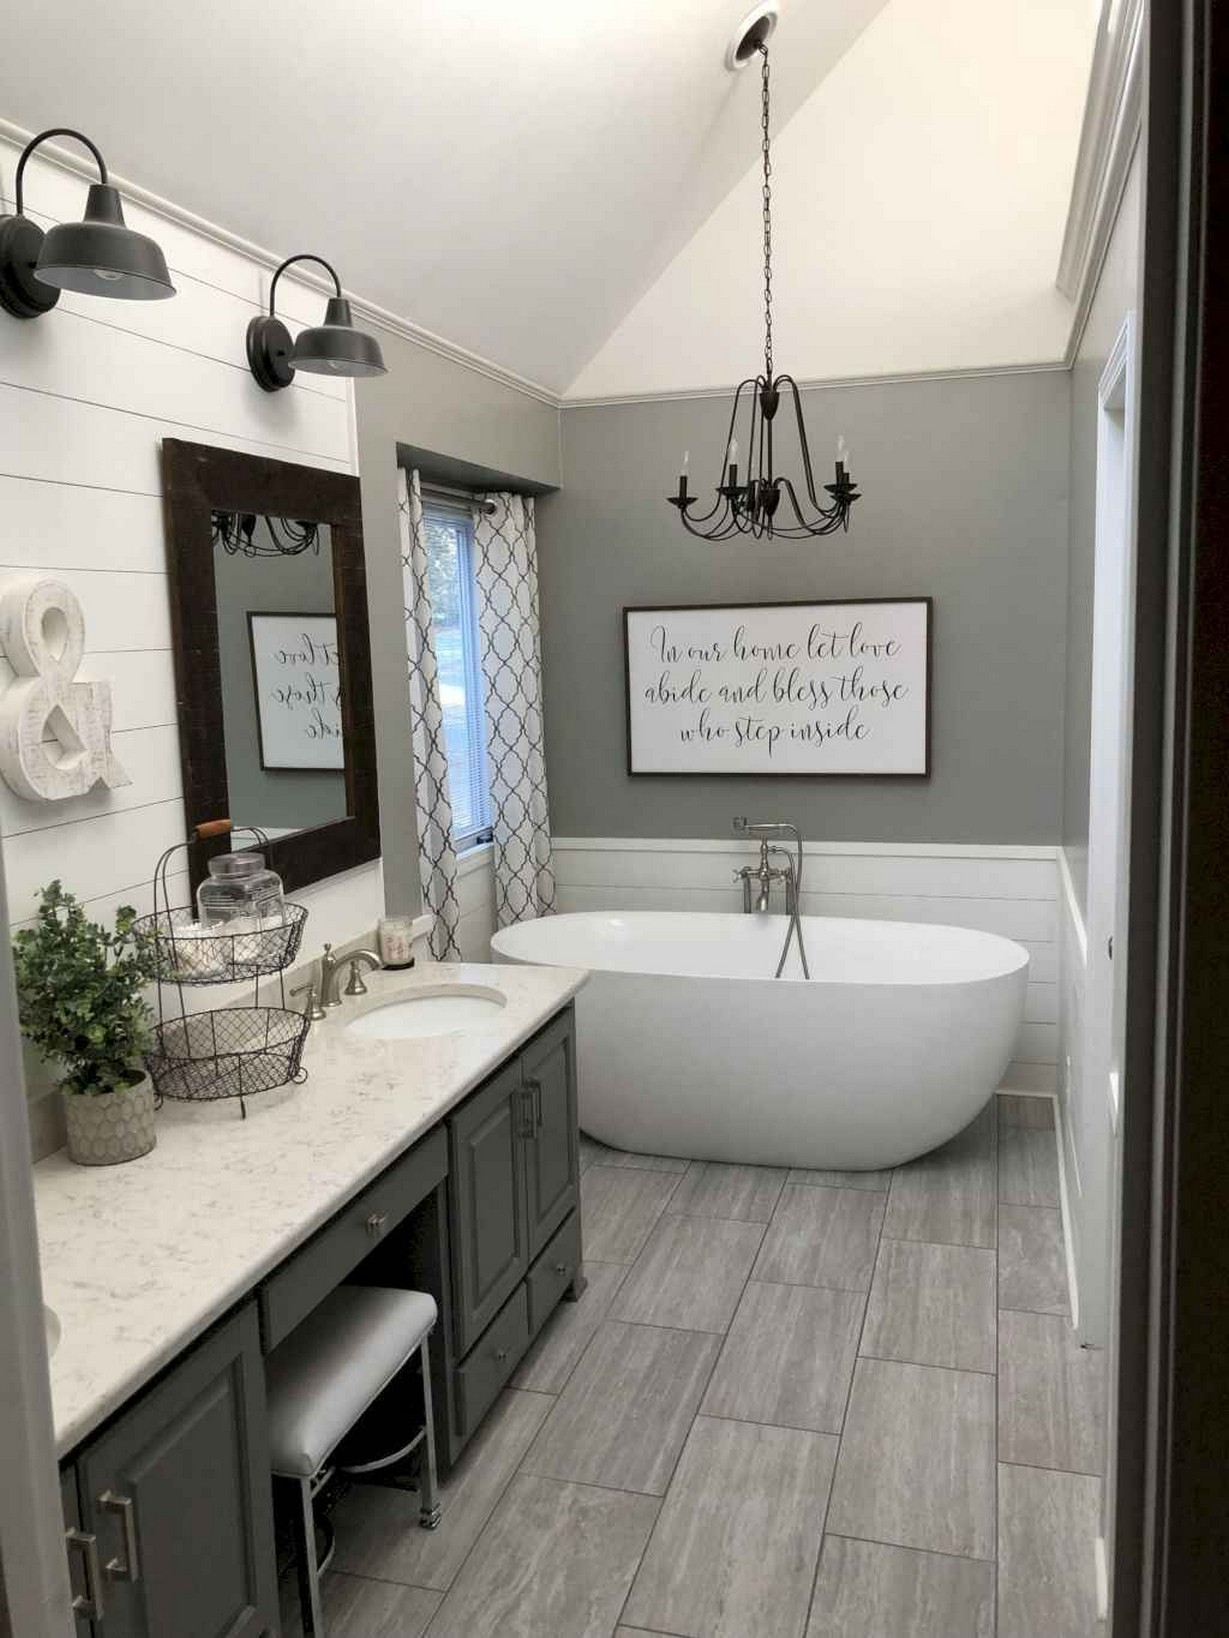 70 Master Bathroom Remodeling For Man and Woman Home Decor 56